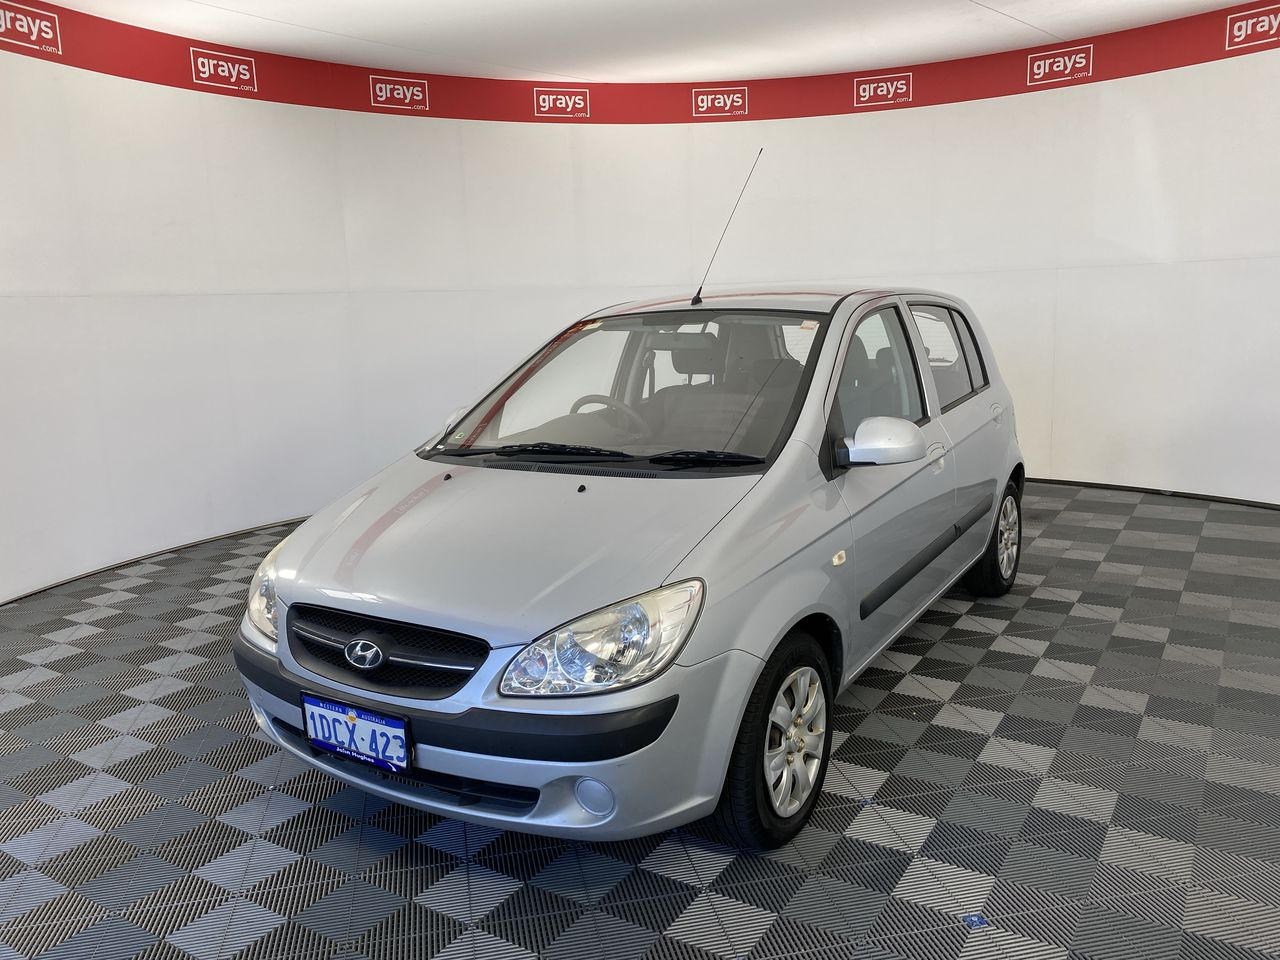 2009 Hyundai Getz S TB Manual Hatchback